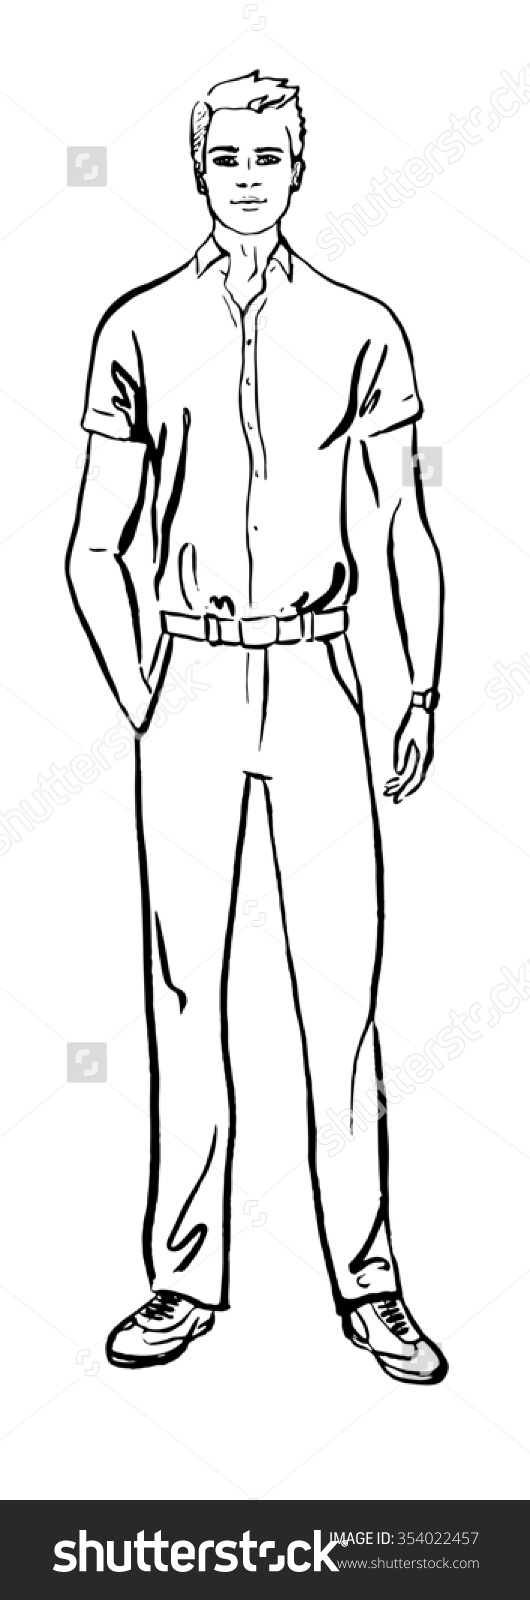 Fashion Illustration Man Hand Drawn Ink Stock Illustration.